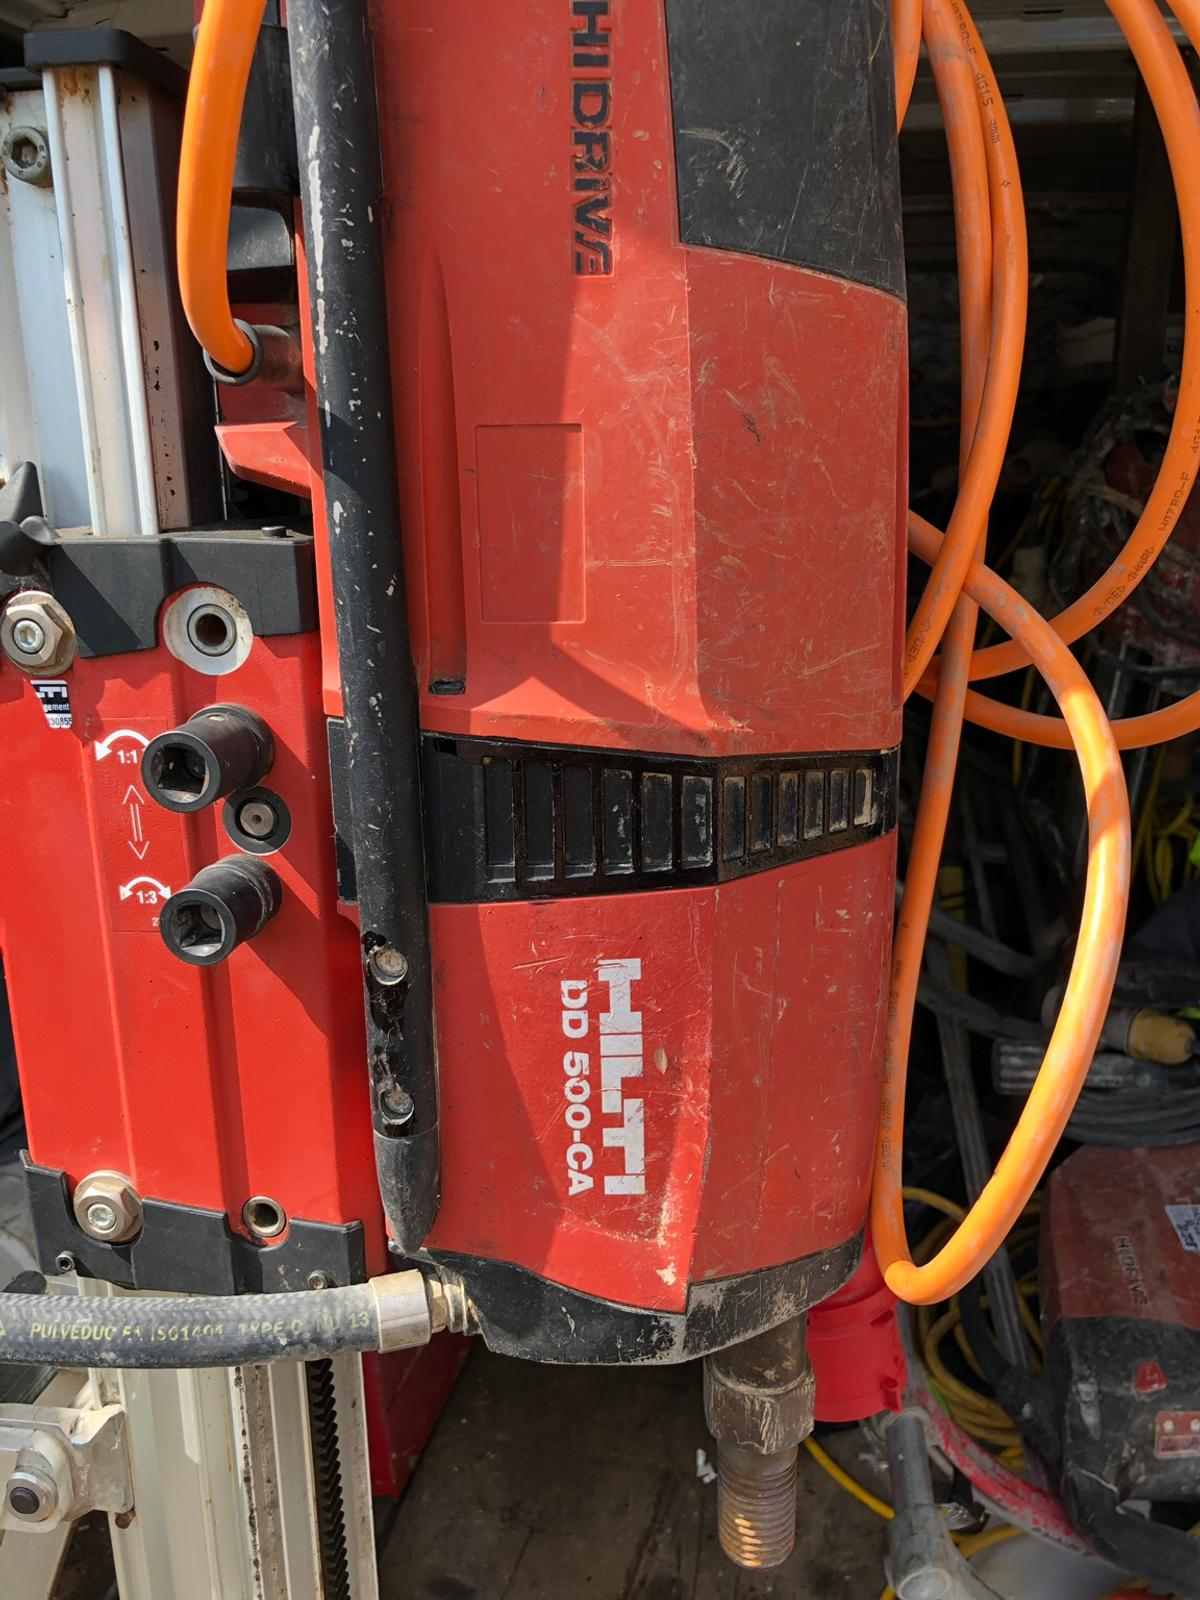 Hilti dd 500 3 phase 415 volts diamond drill in KT8